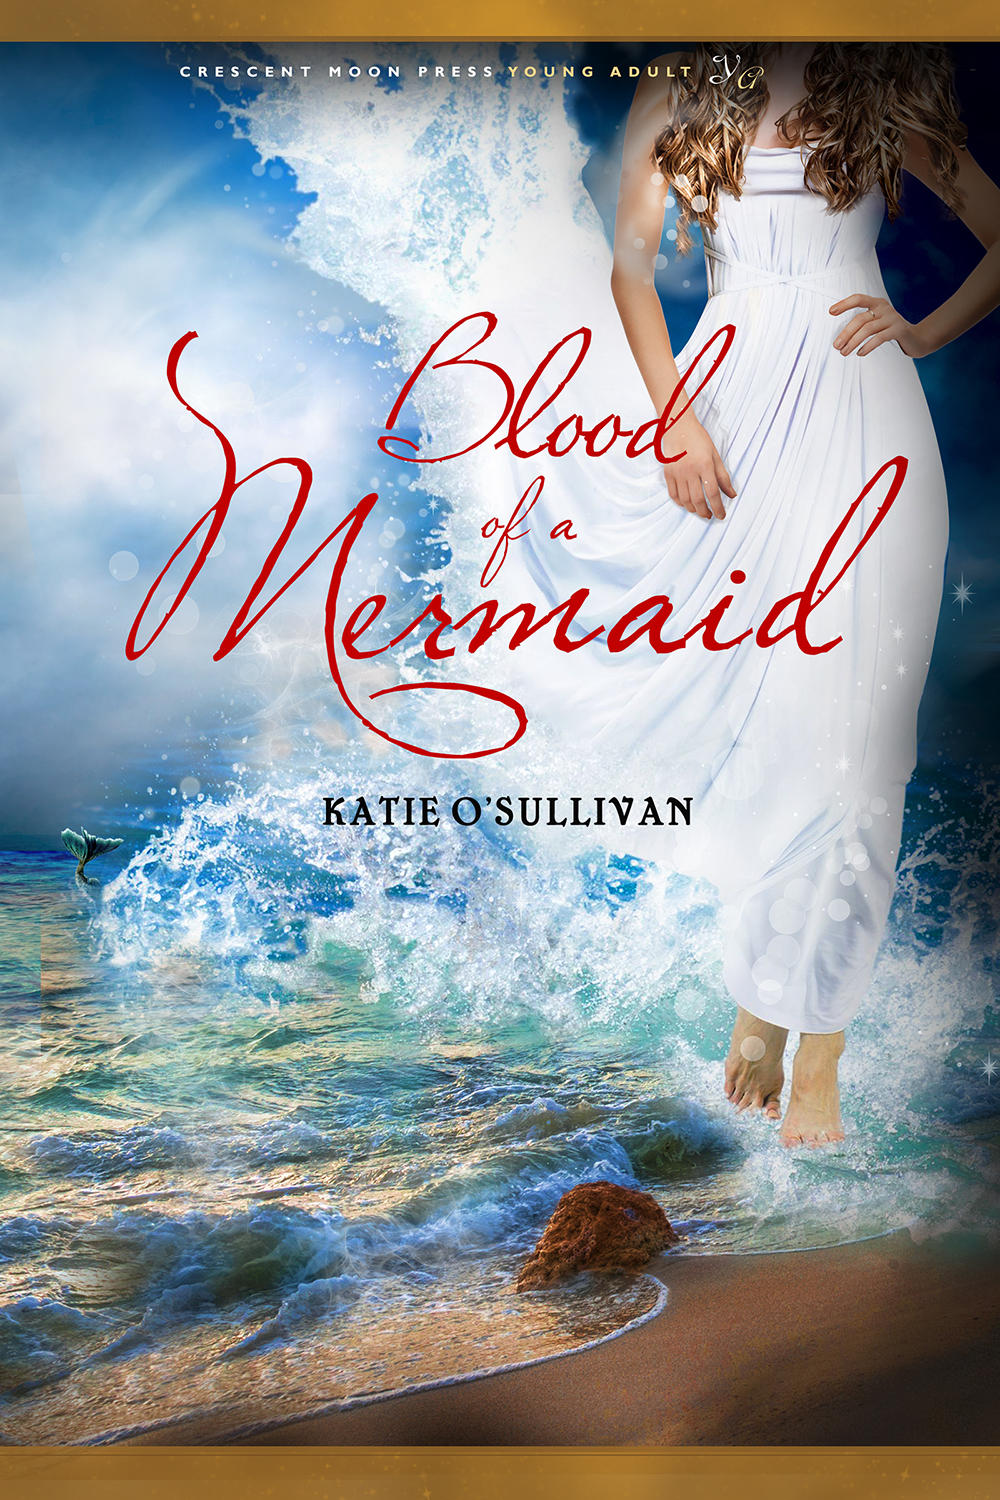 BloodofaMermaid_cover.jpeg